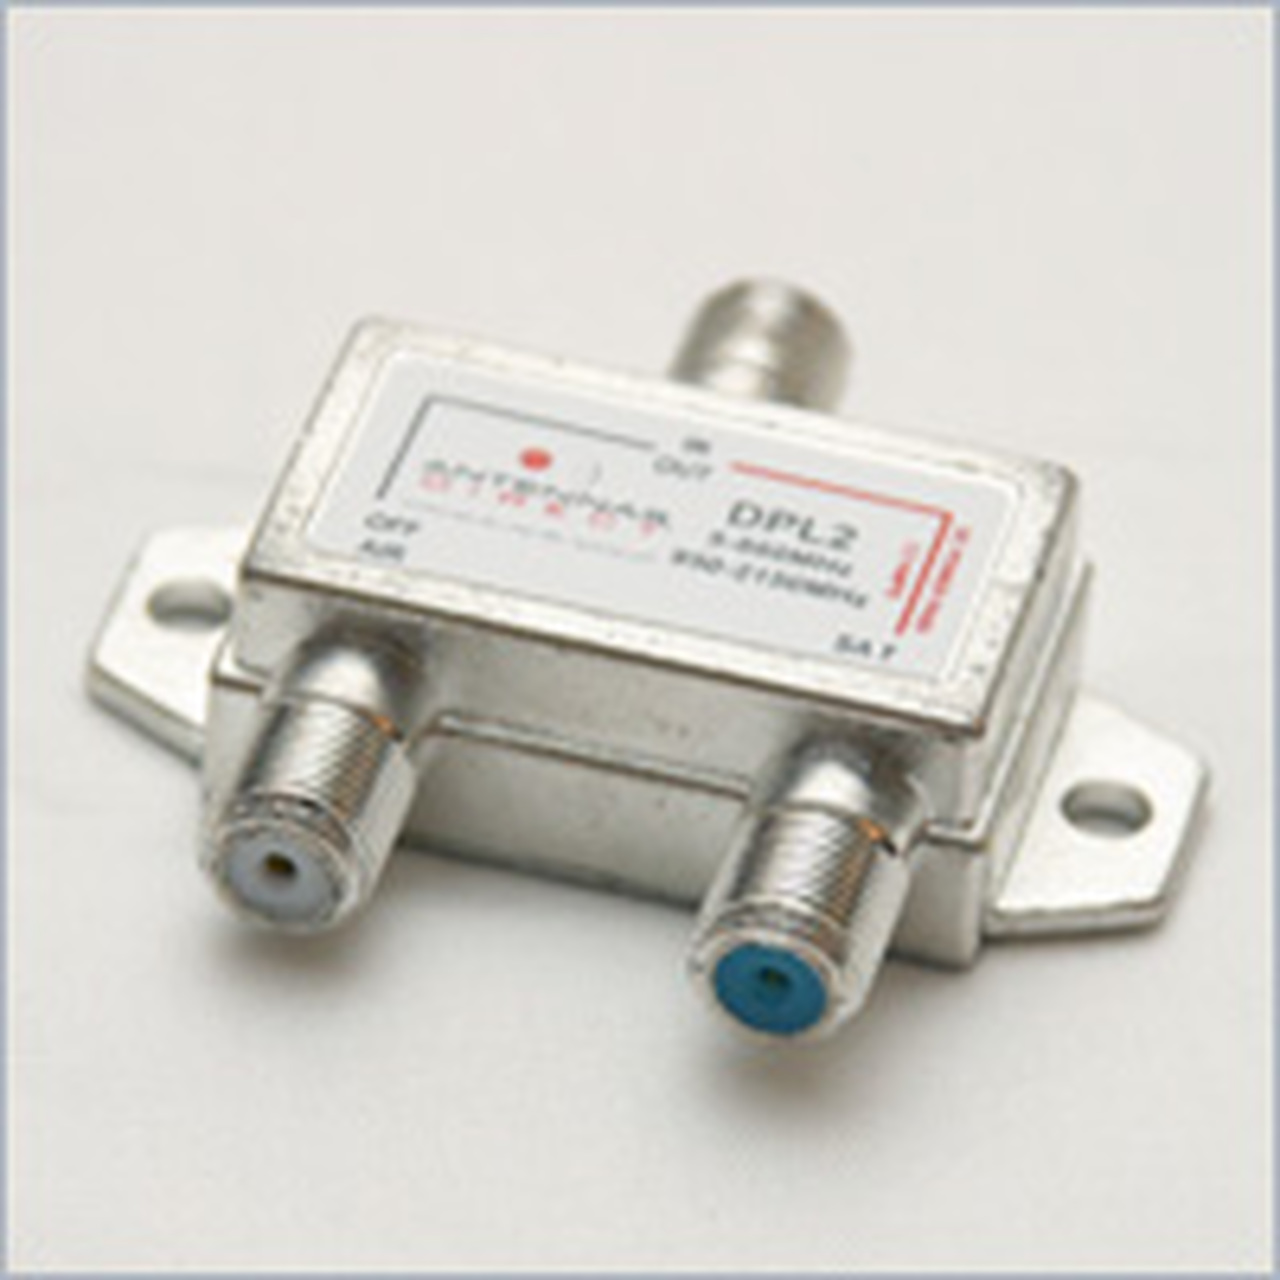 https://www.antennasdirect.com - 5-2150 Mhz Satellite Diplexer